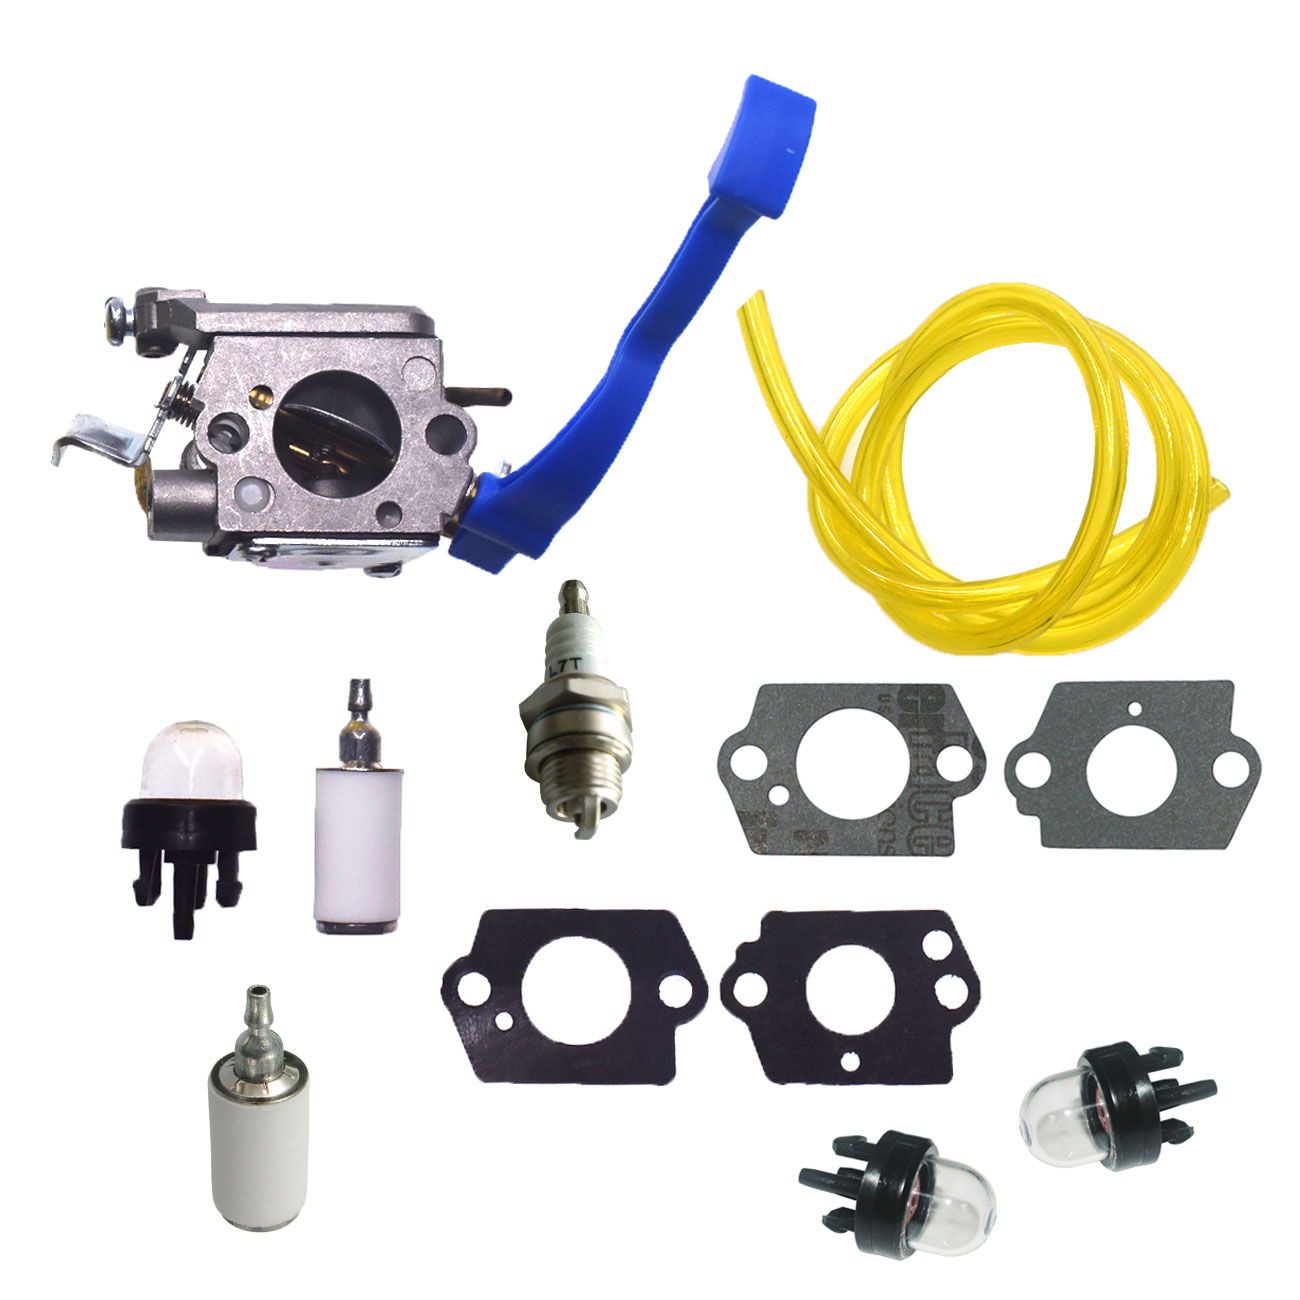 us $20 86 carburetor fuel filter fit poulan leaf blower husqvarna 125b 125bx 125bvx in chainsaws from tools on aliexpress com alibaba group Racor Fuel Gas Filters